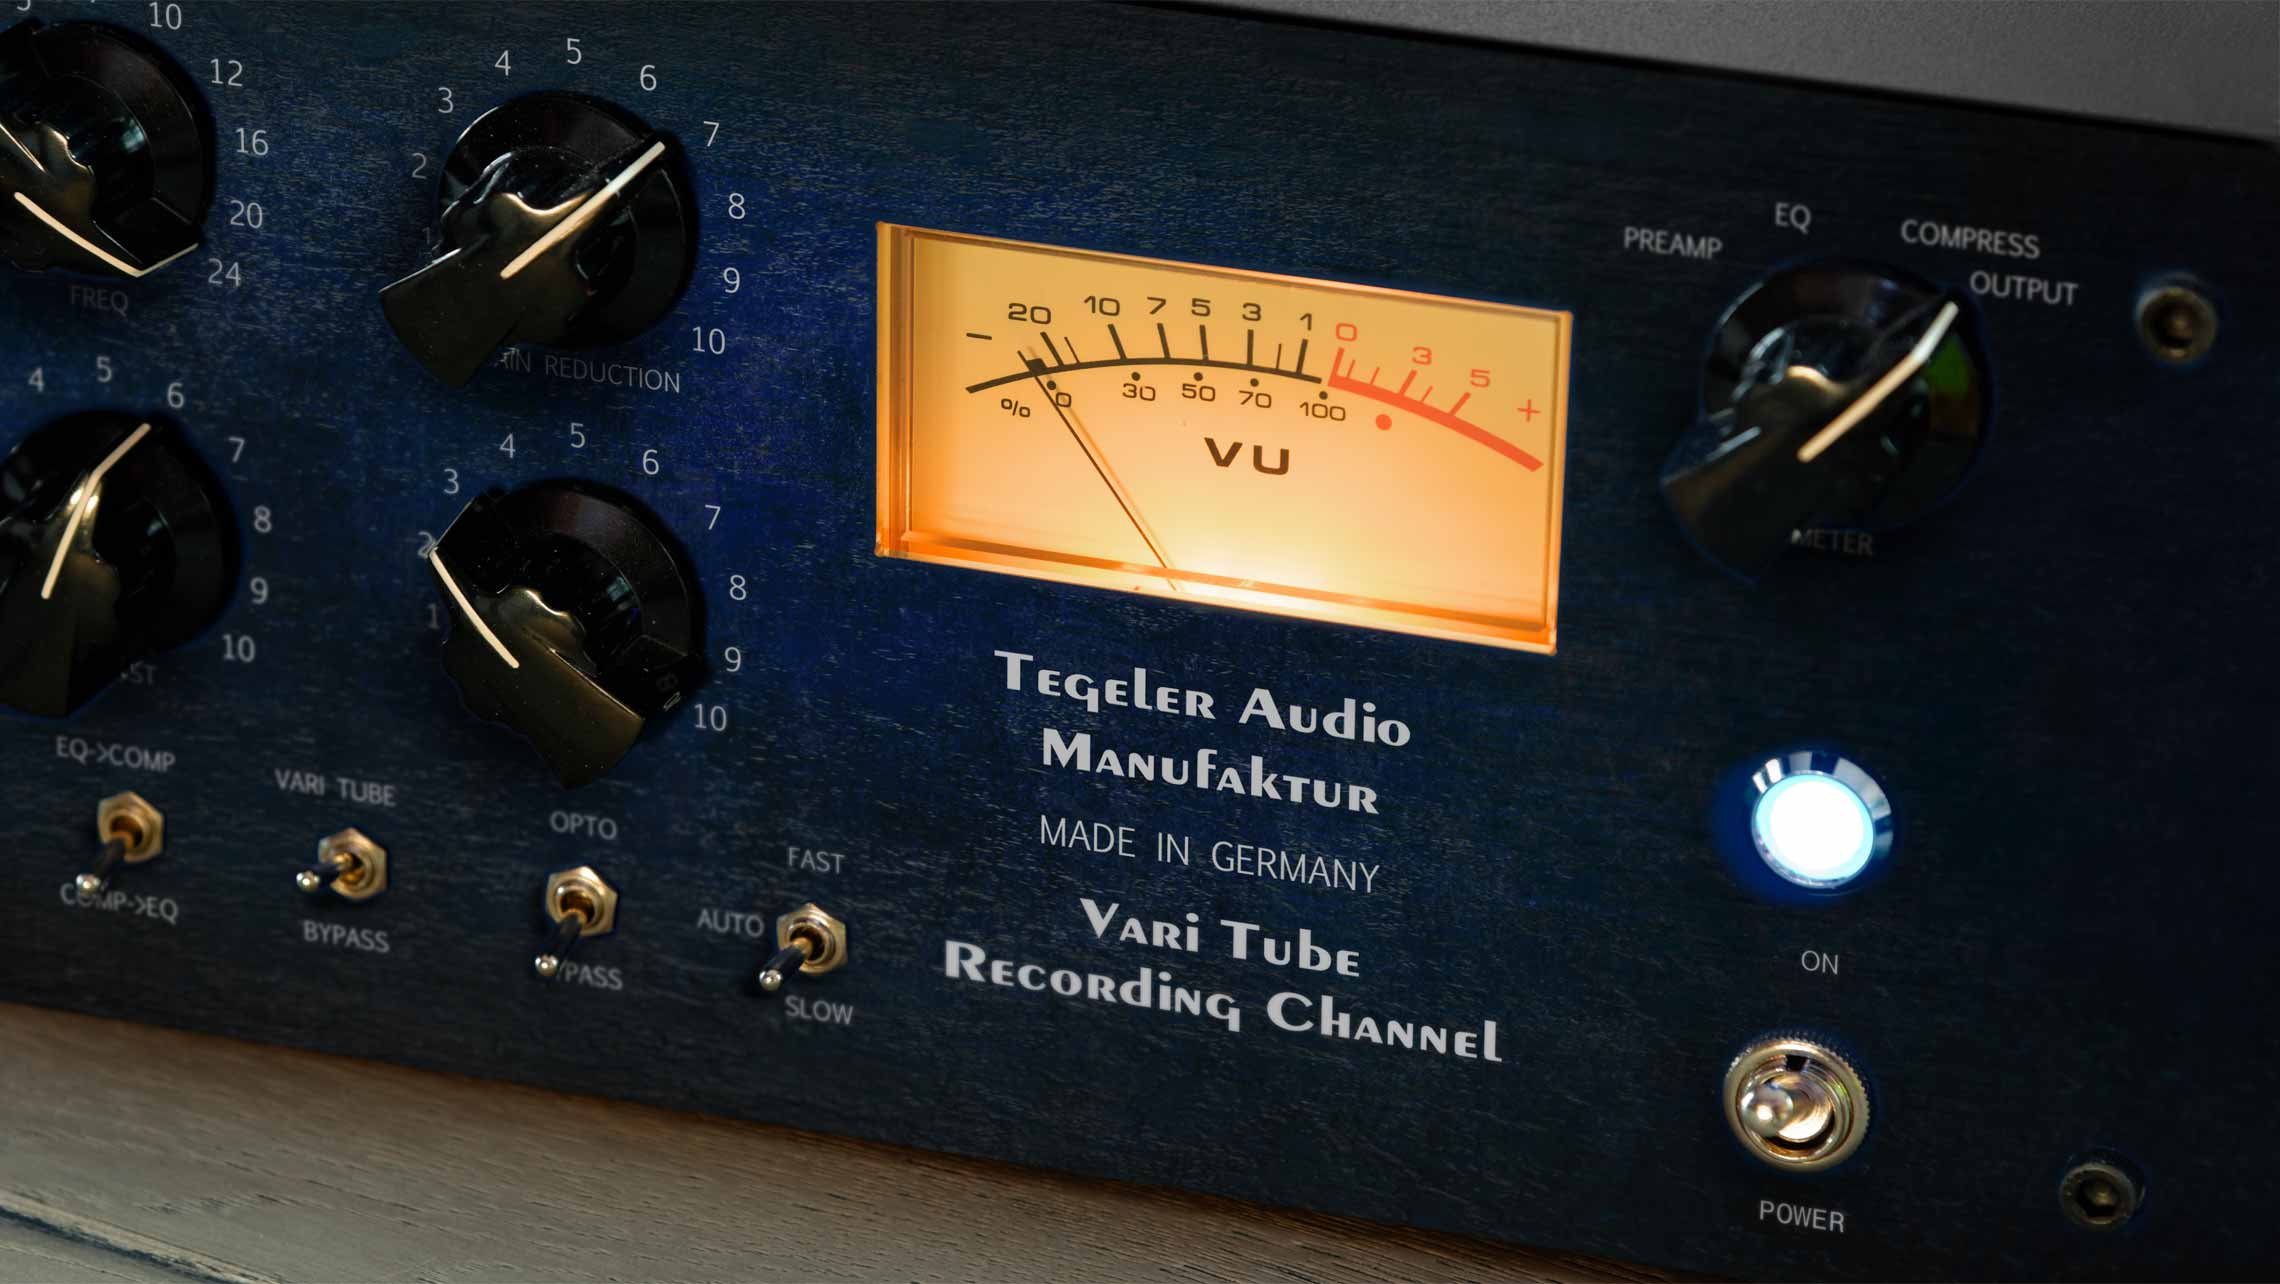 Vari-Tube-Recording-Channel-VTRC-4.jpg